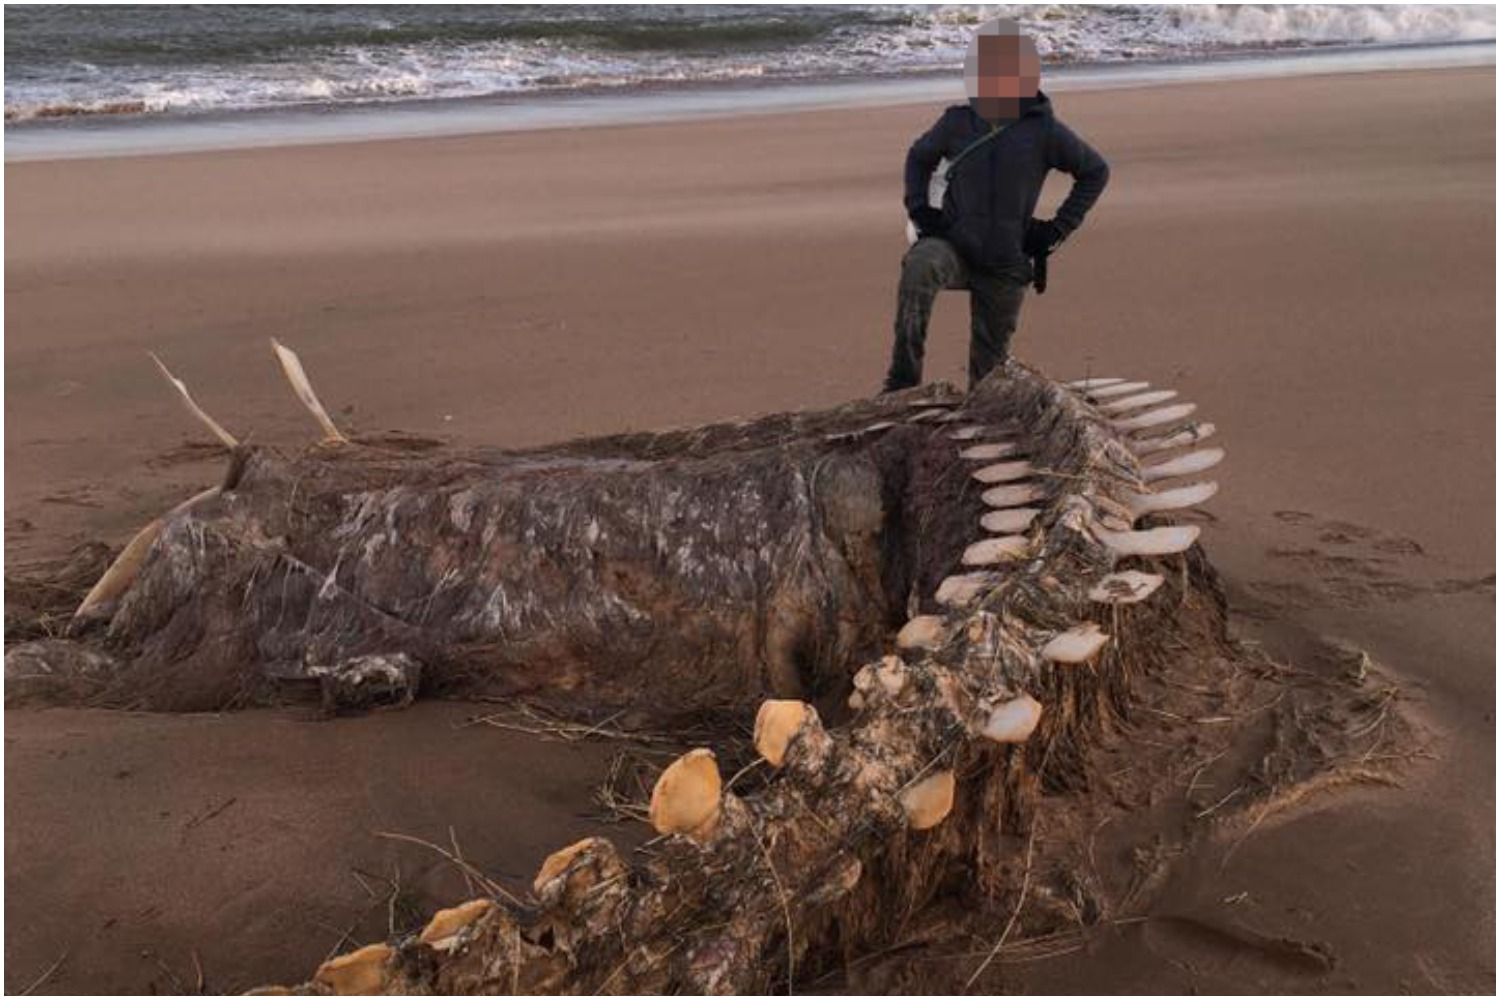 Mystery Surrounds Nessie Creature Washed Up On Aberdeenshire Beach During Storm Ciara